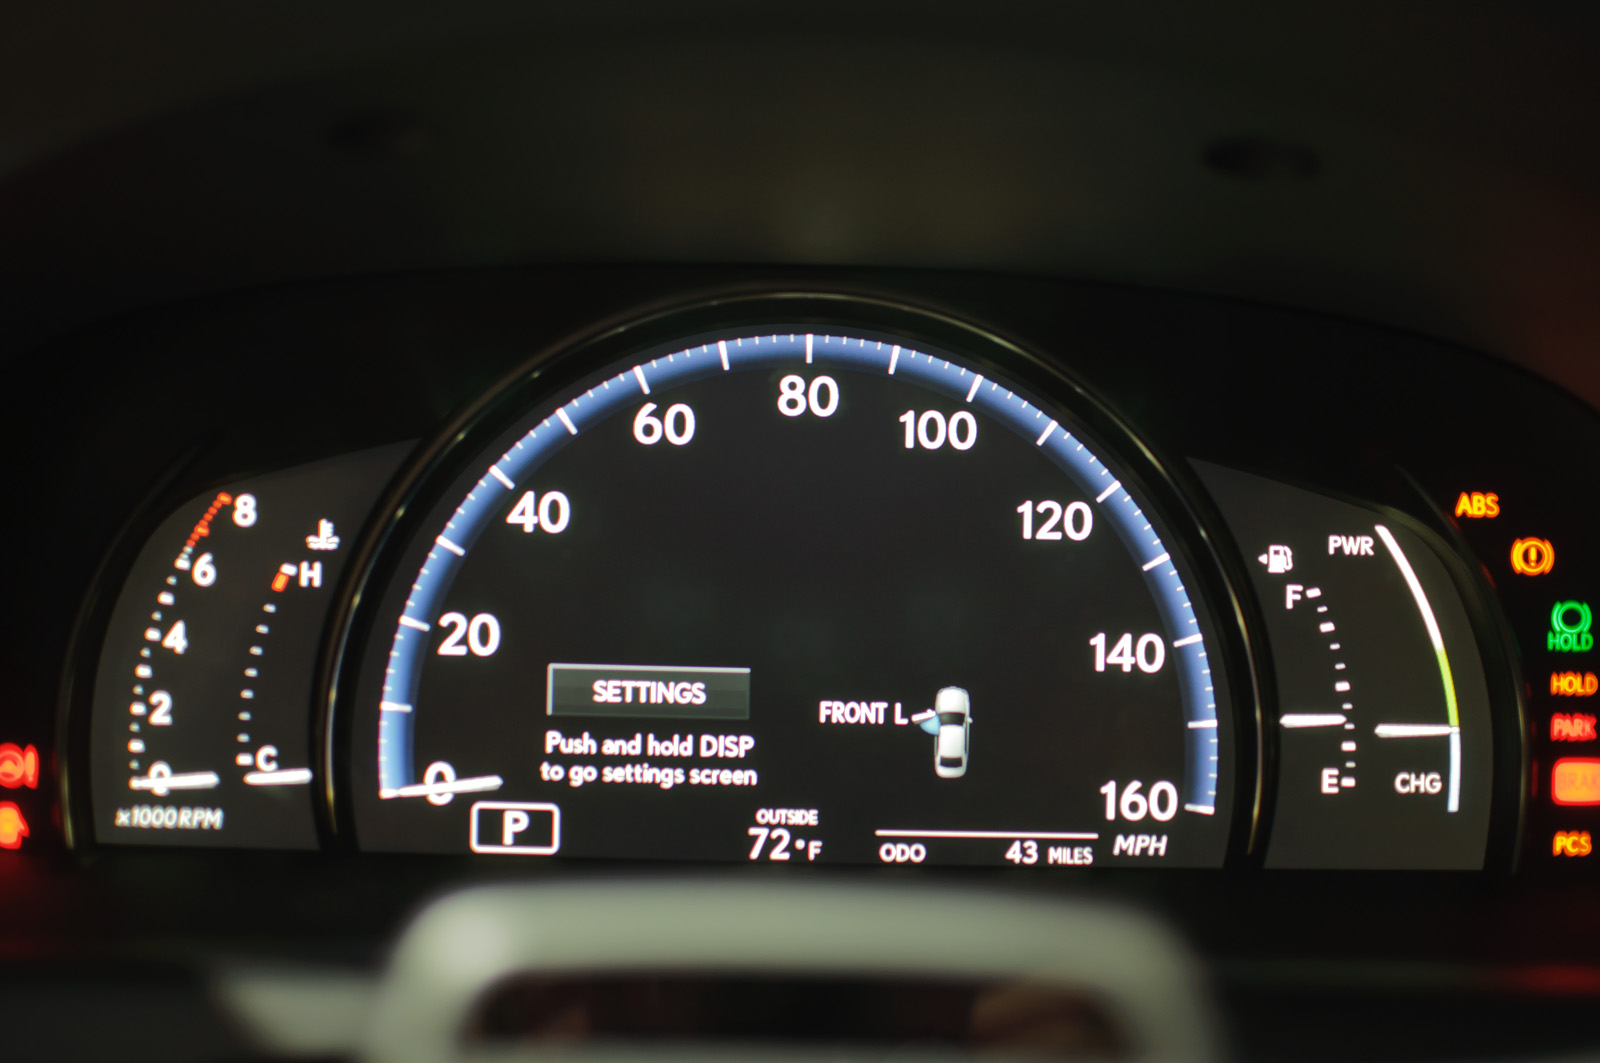 Lexus Car Images >> File:Instrument Cluster, Lexus LS600h L (US) - Flickr - skinnylawyer.jpg - Wikimedia Commons